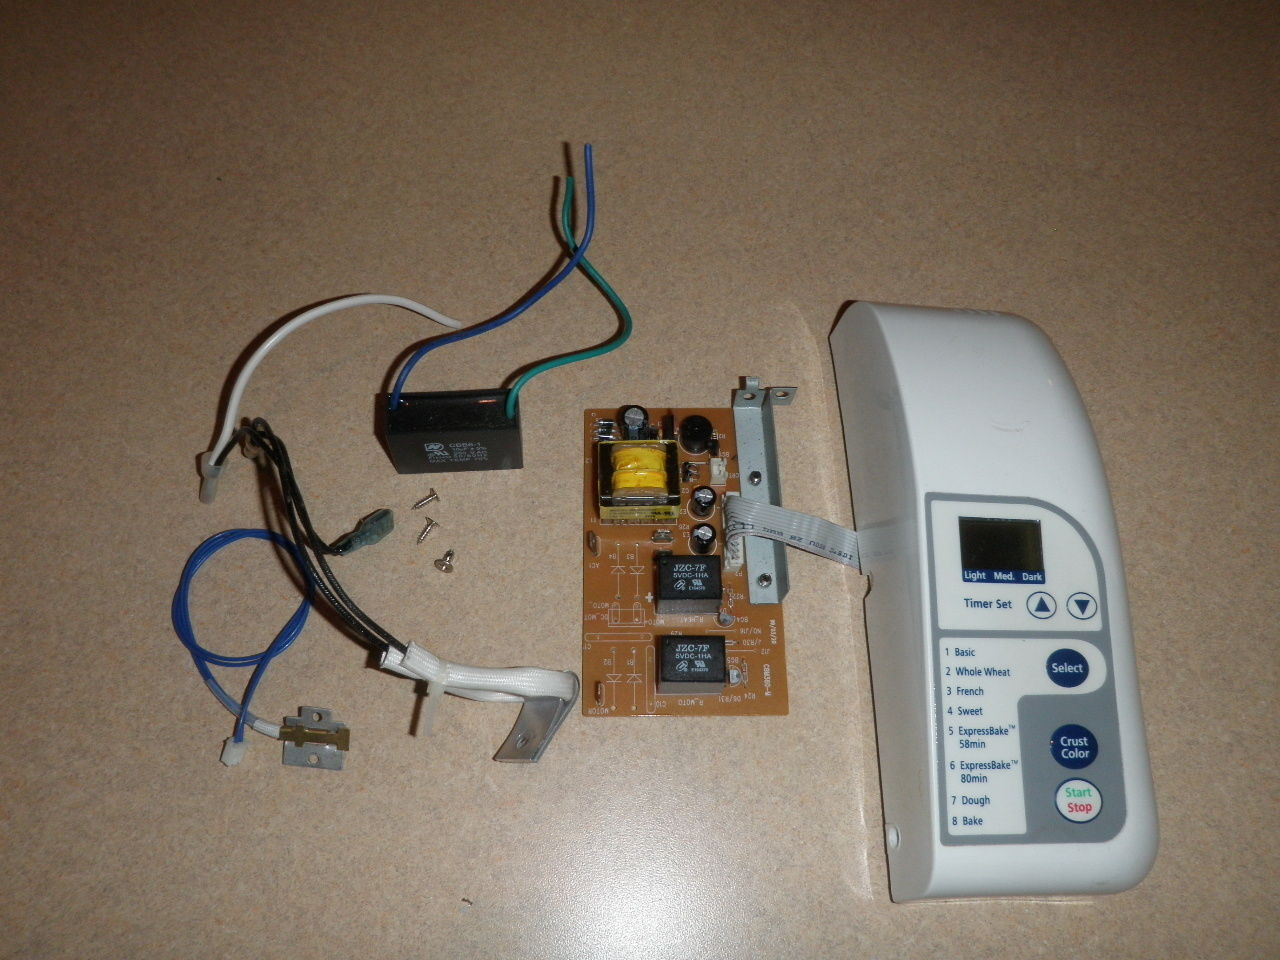 Primary image for Oster Bread Machine 5834 Control Panel, PCB, Fuse, Sensor, Capacitor